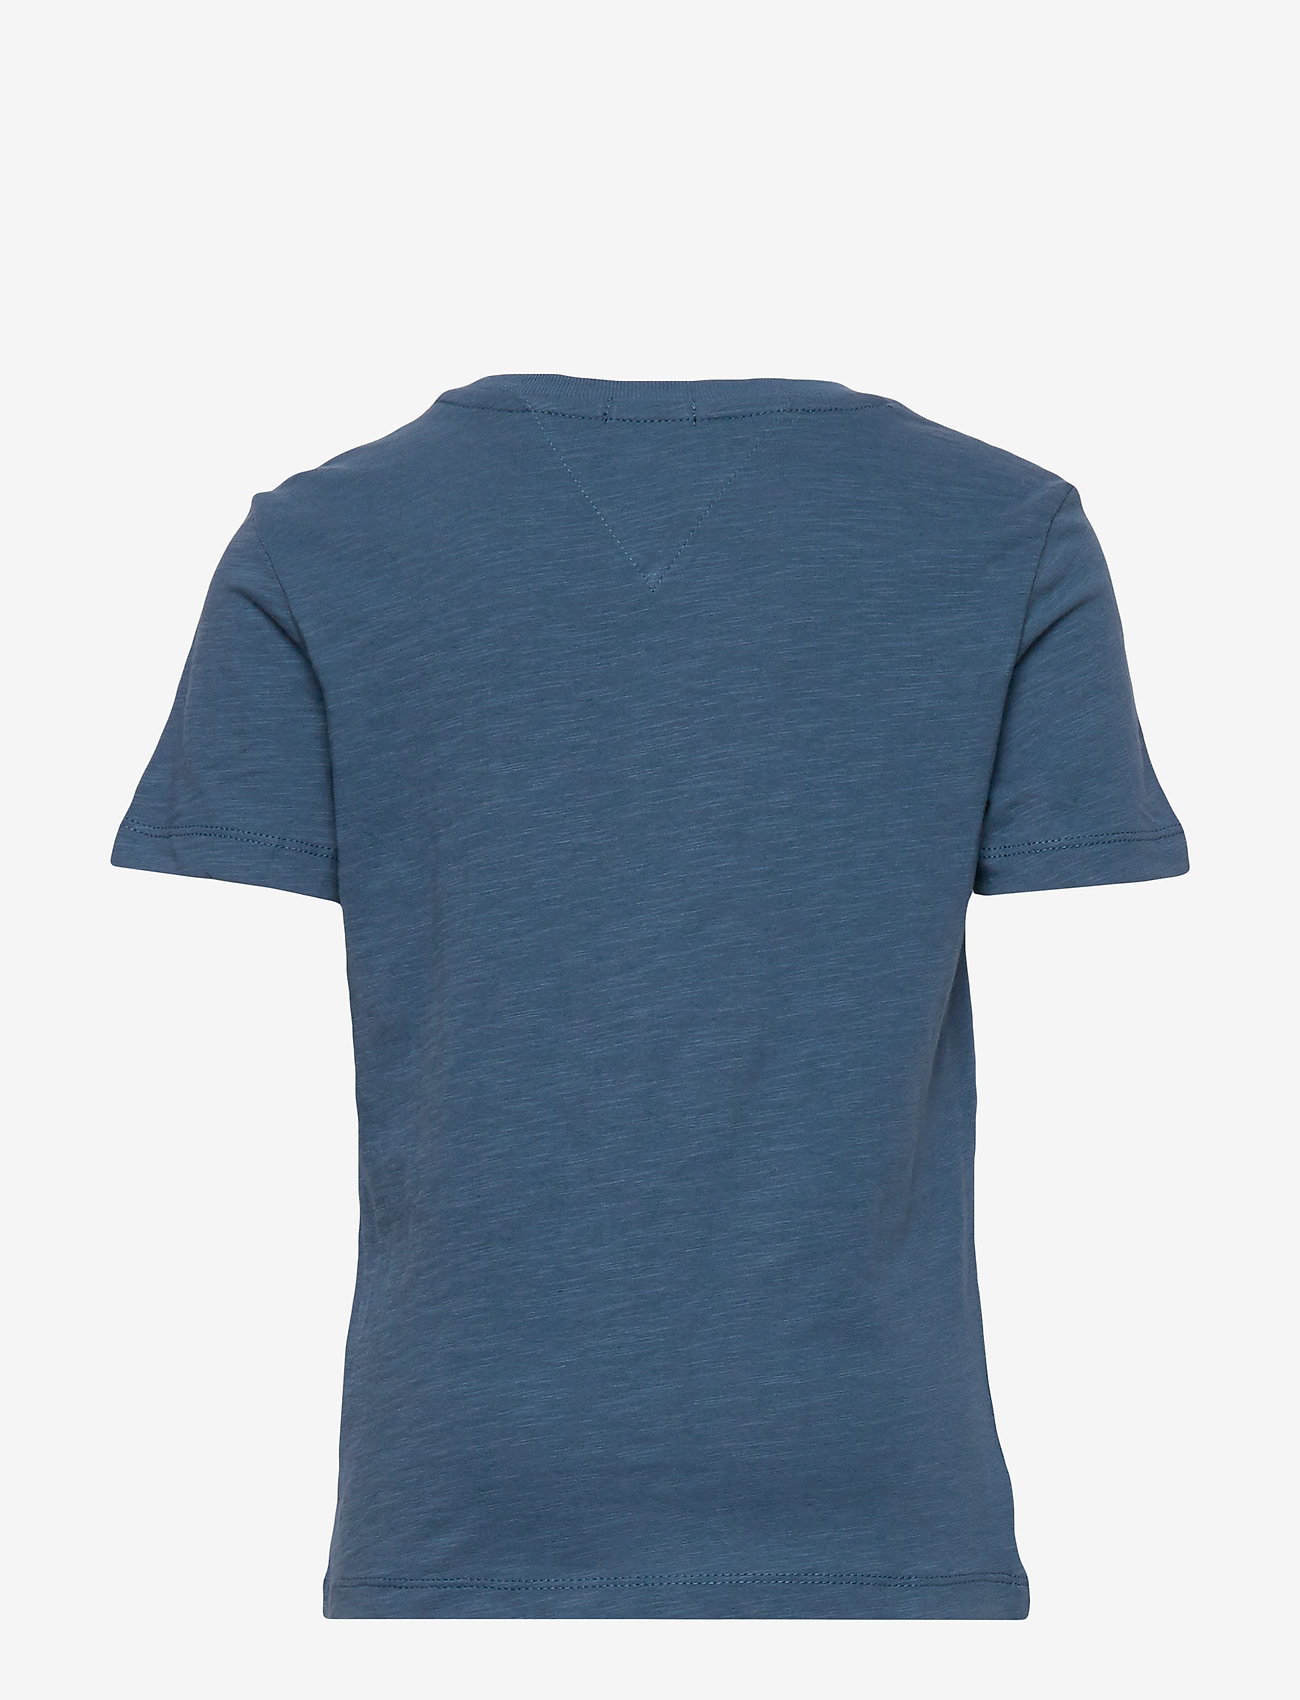 Tommy Hilfiger - ESSENTIAL LOGO TEE S - short-sleeved - audacious blue 329-710 - 1